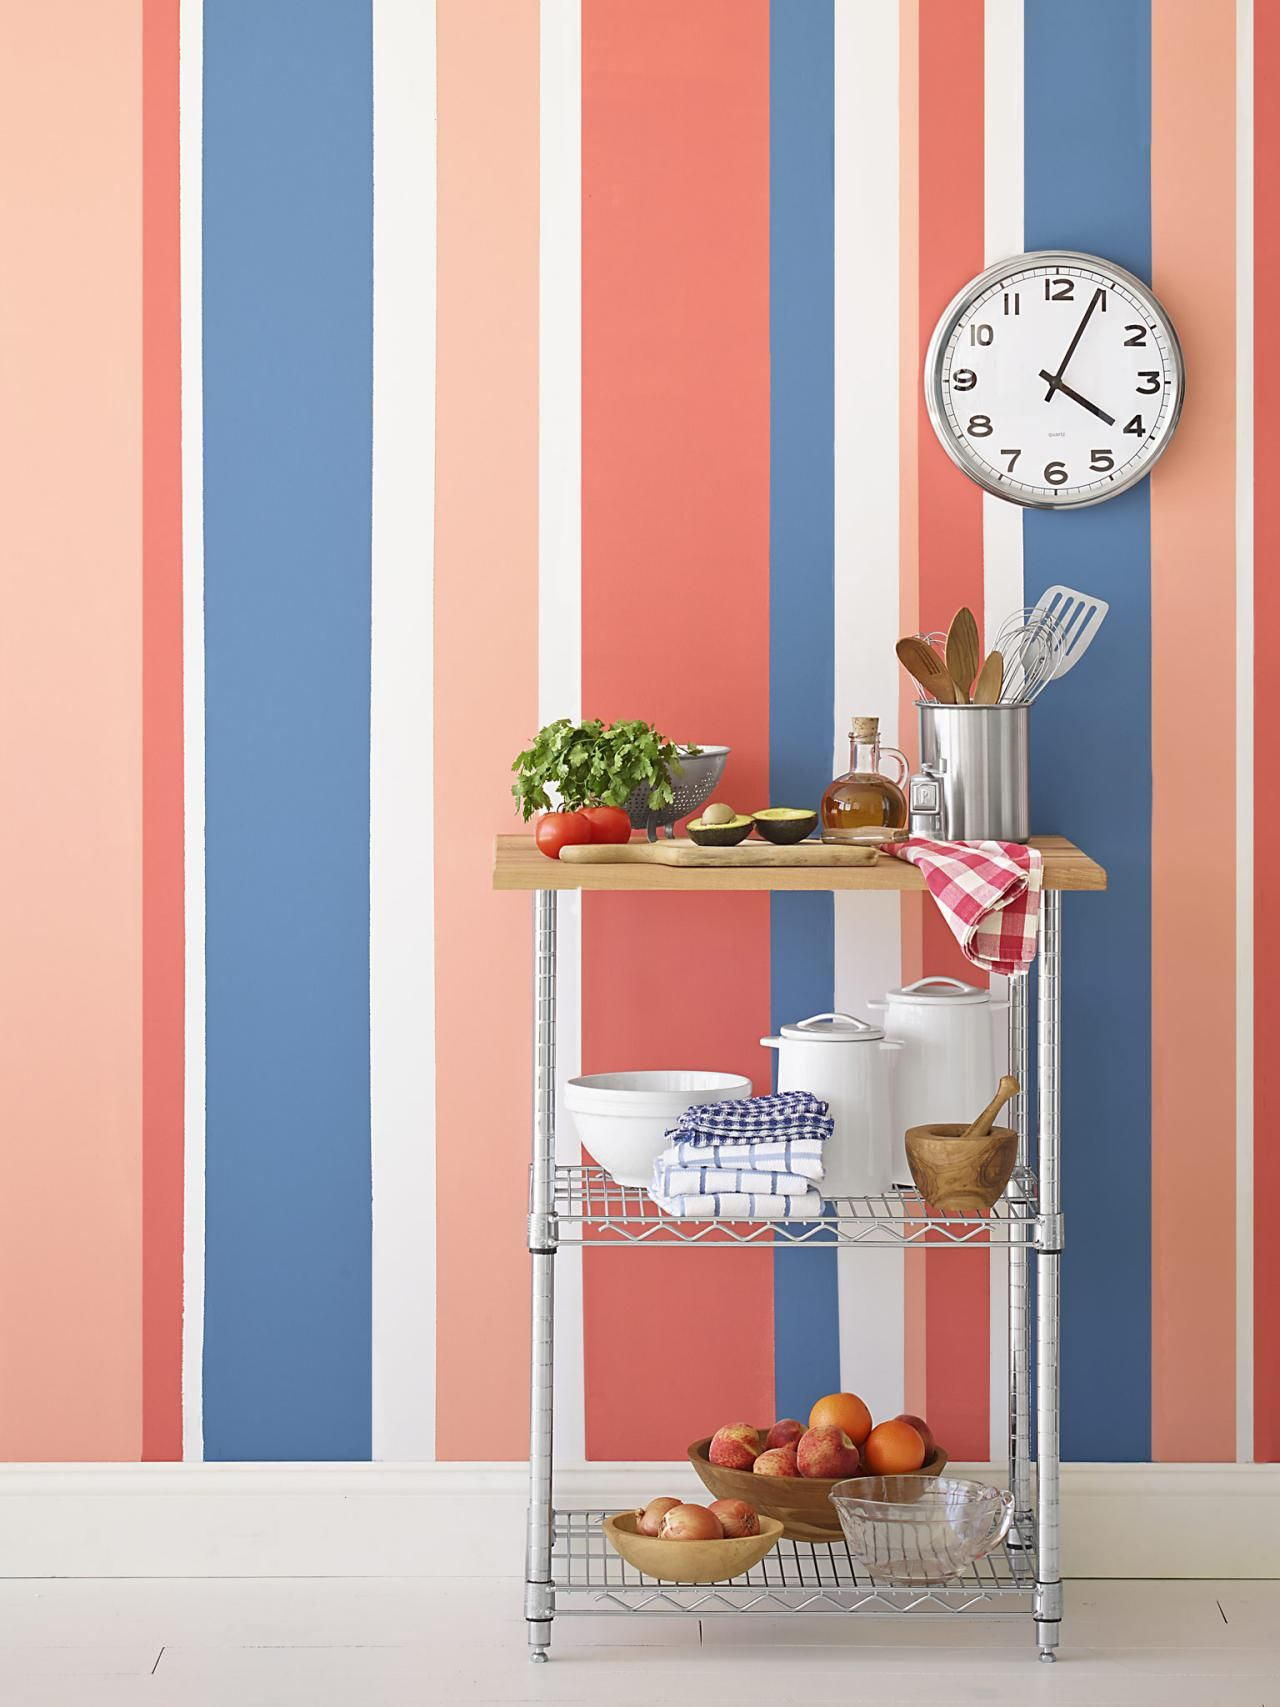 Wall paint ideas stripes - 5 Ways To Paint Stripes On Walls